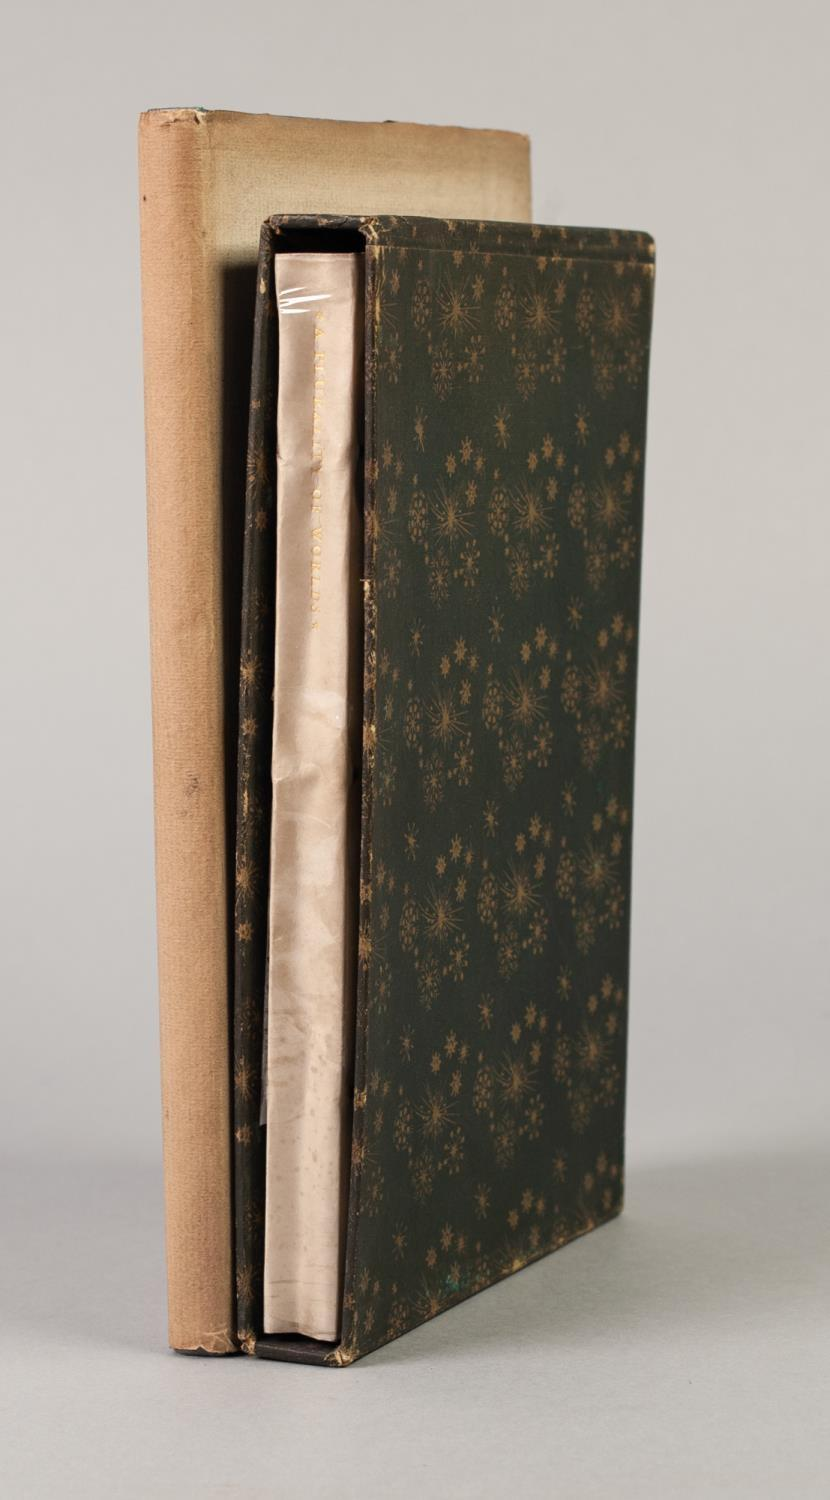 PRIVATE PRESS - TWO TITLES FROM THE NONESUCH PRESS to include The Receipt Book of Elizabeth Raper